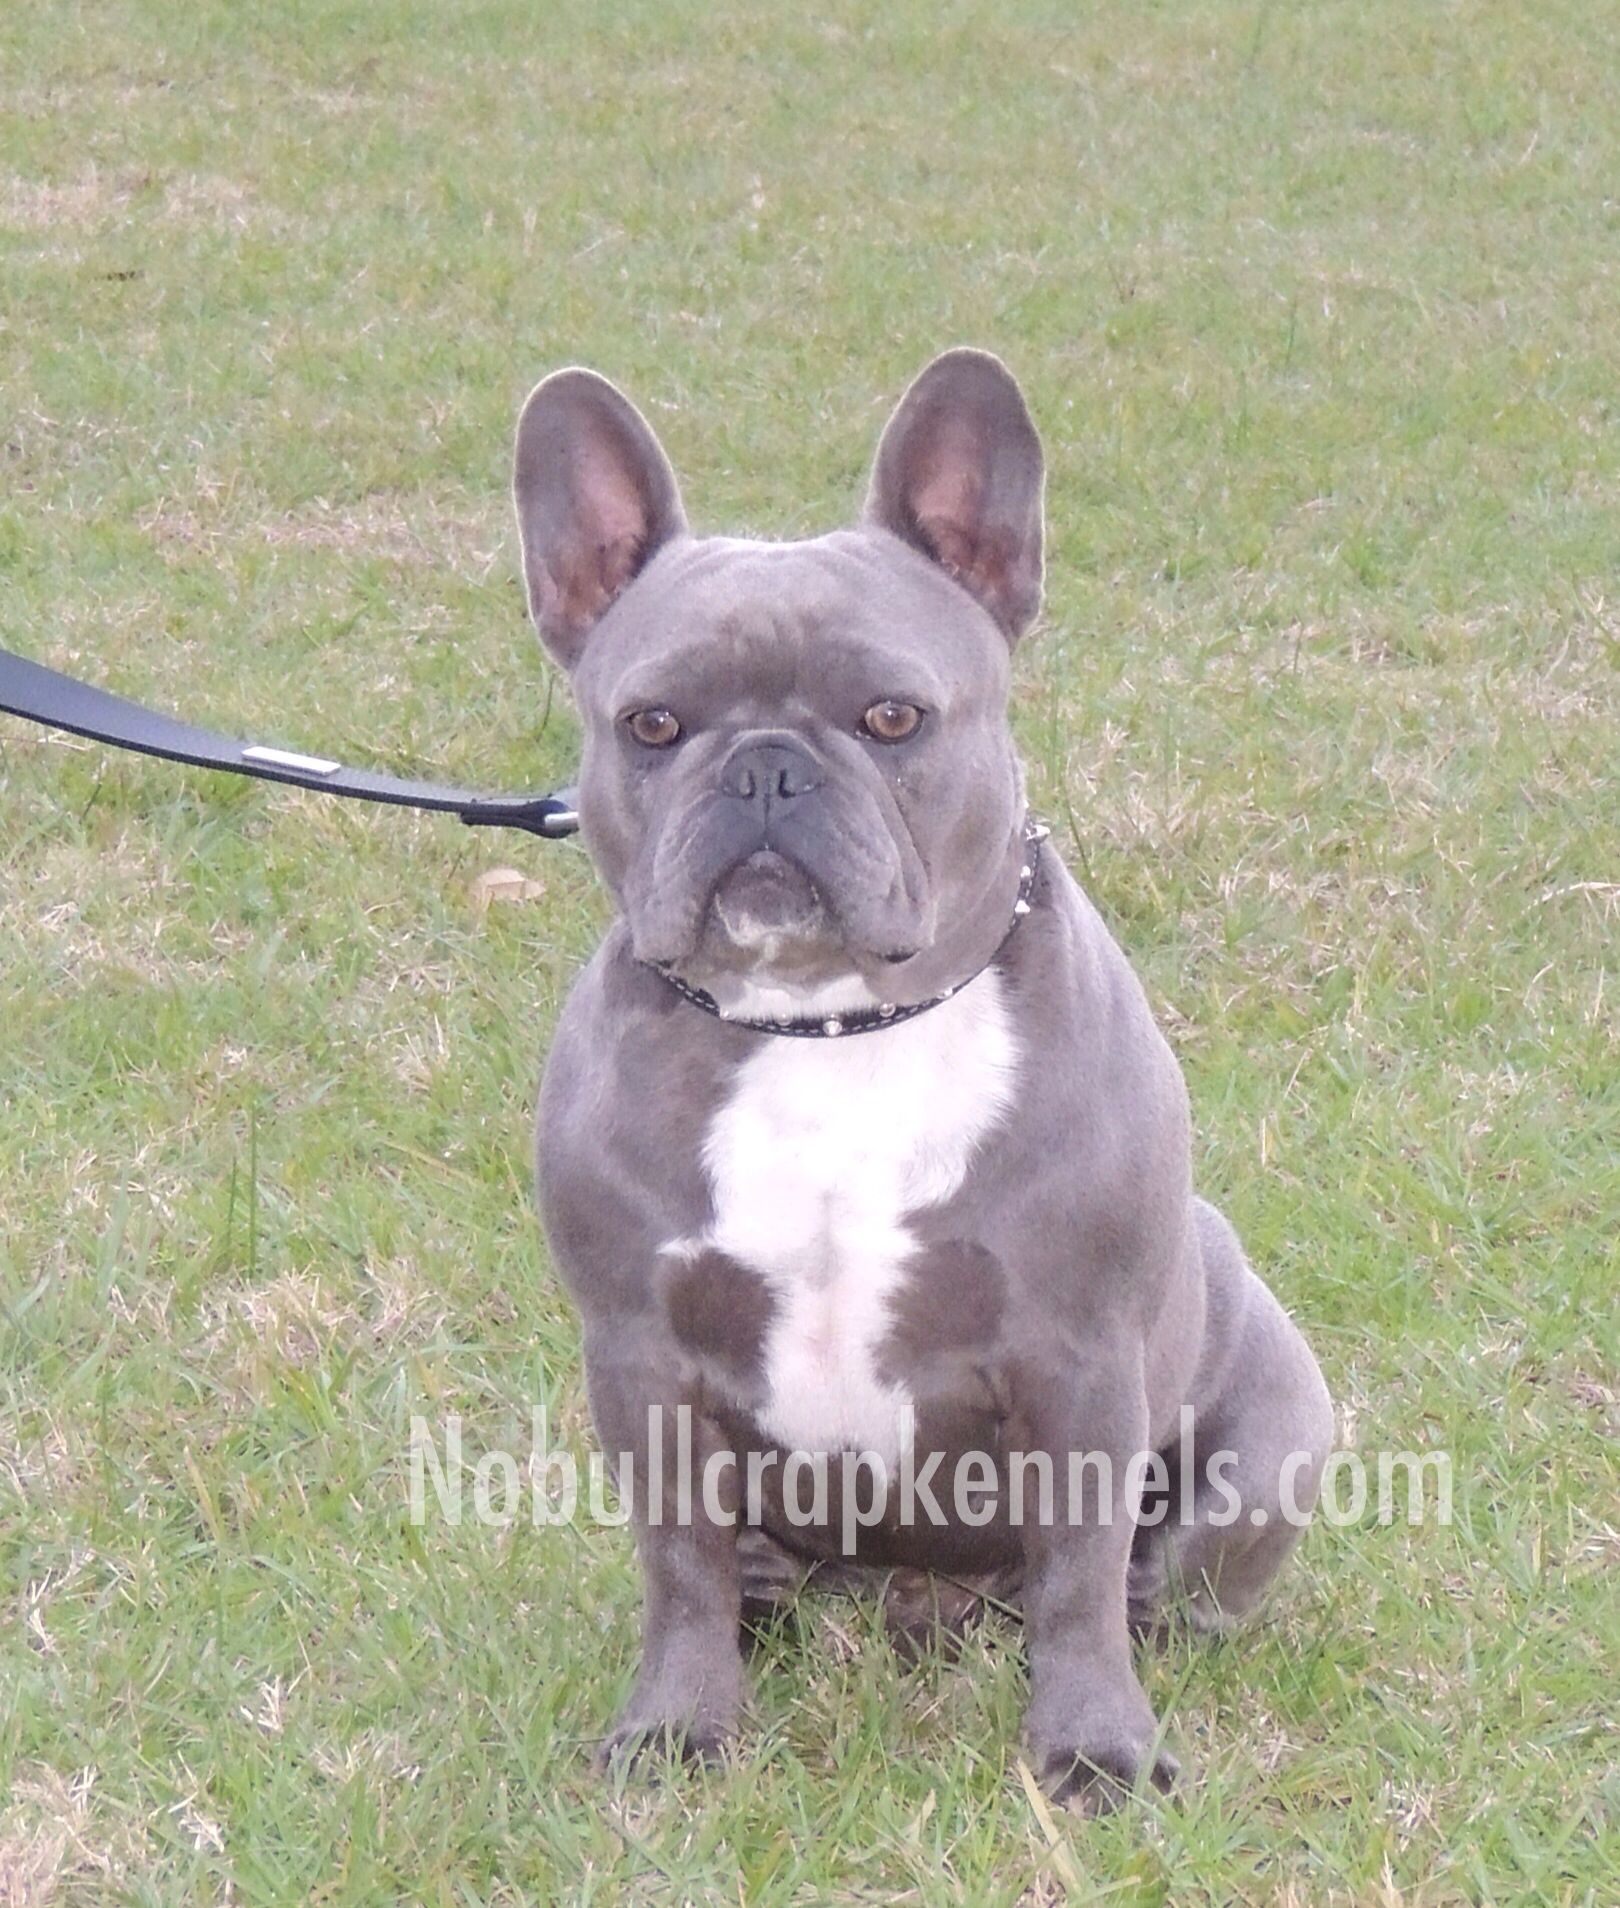 Rhino Valentino Is A Rare Blue French Bulldog That Carry The Rare